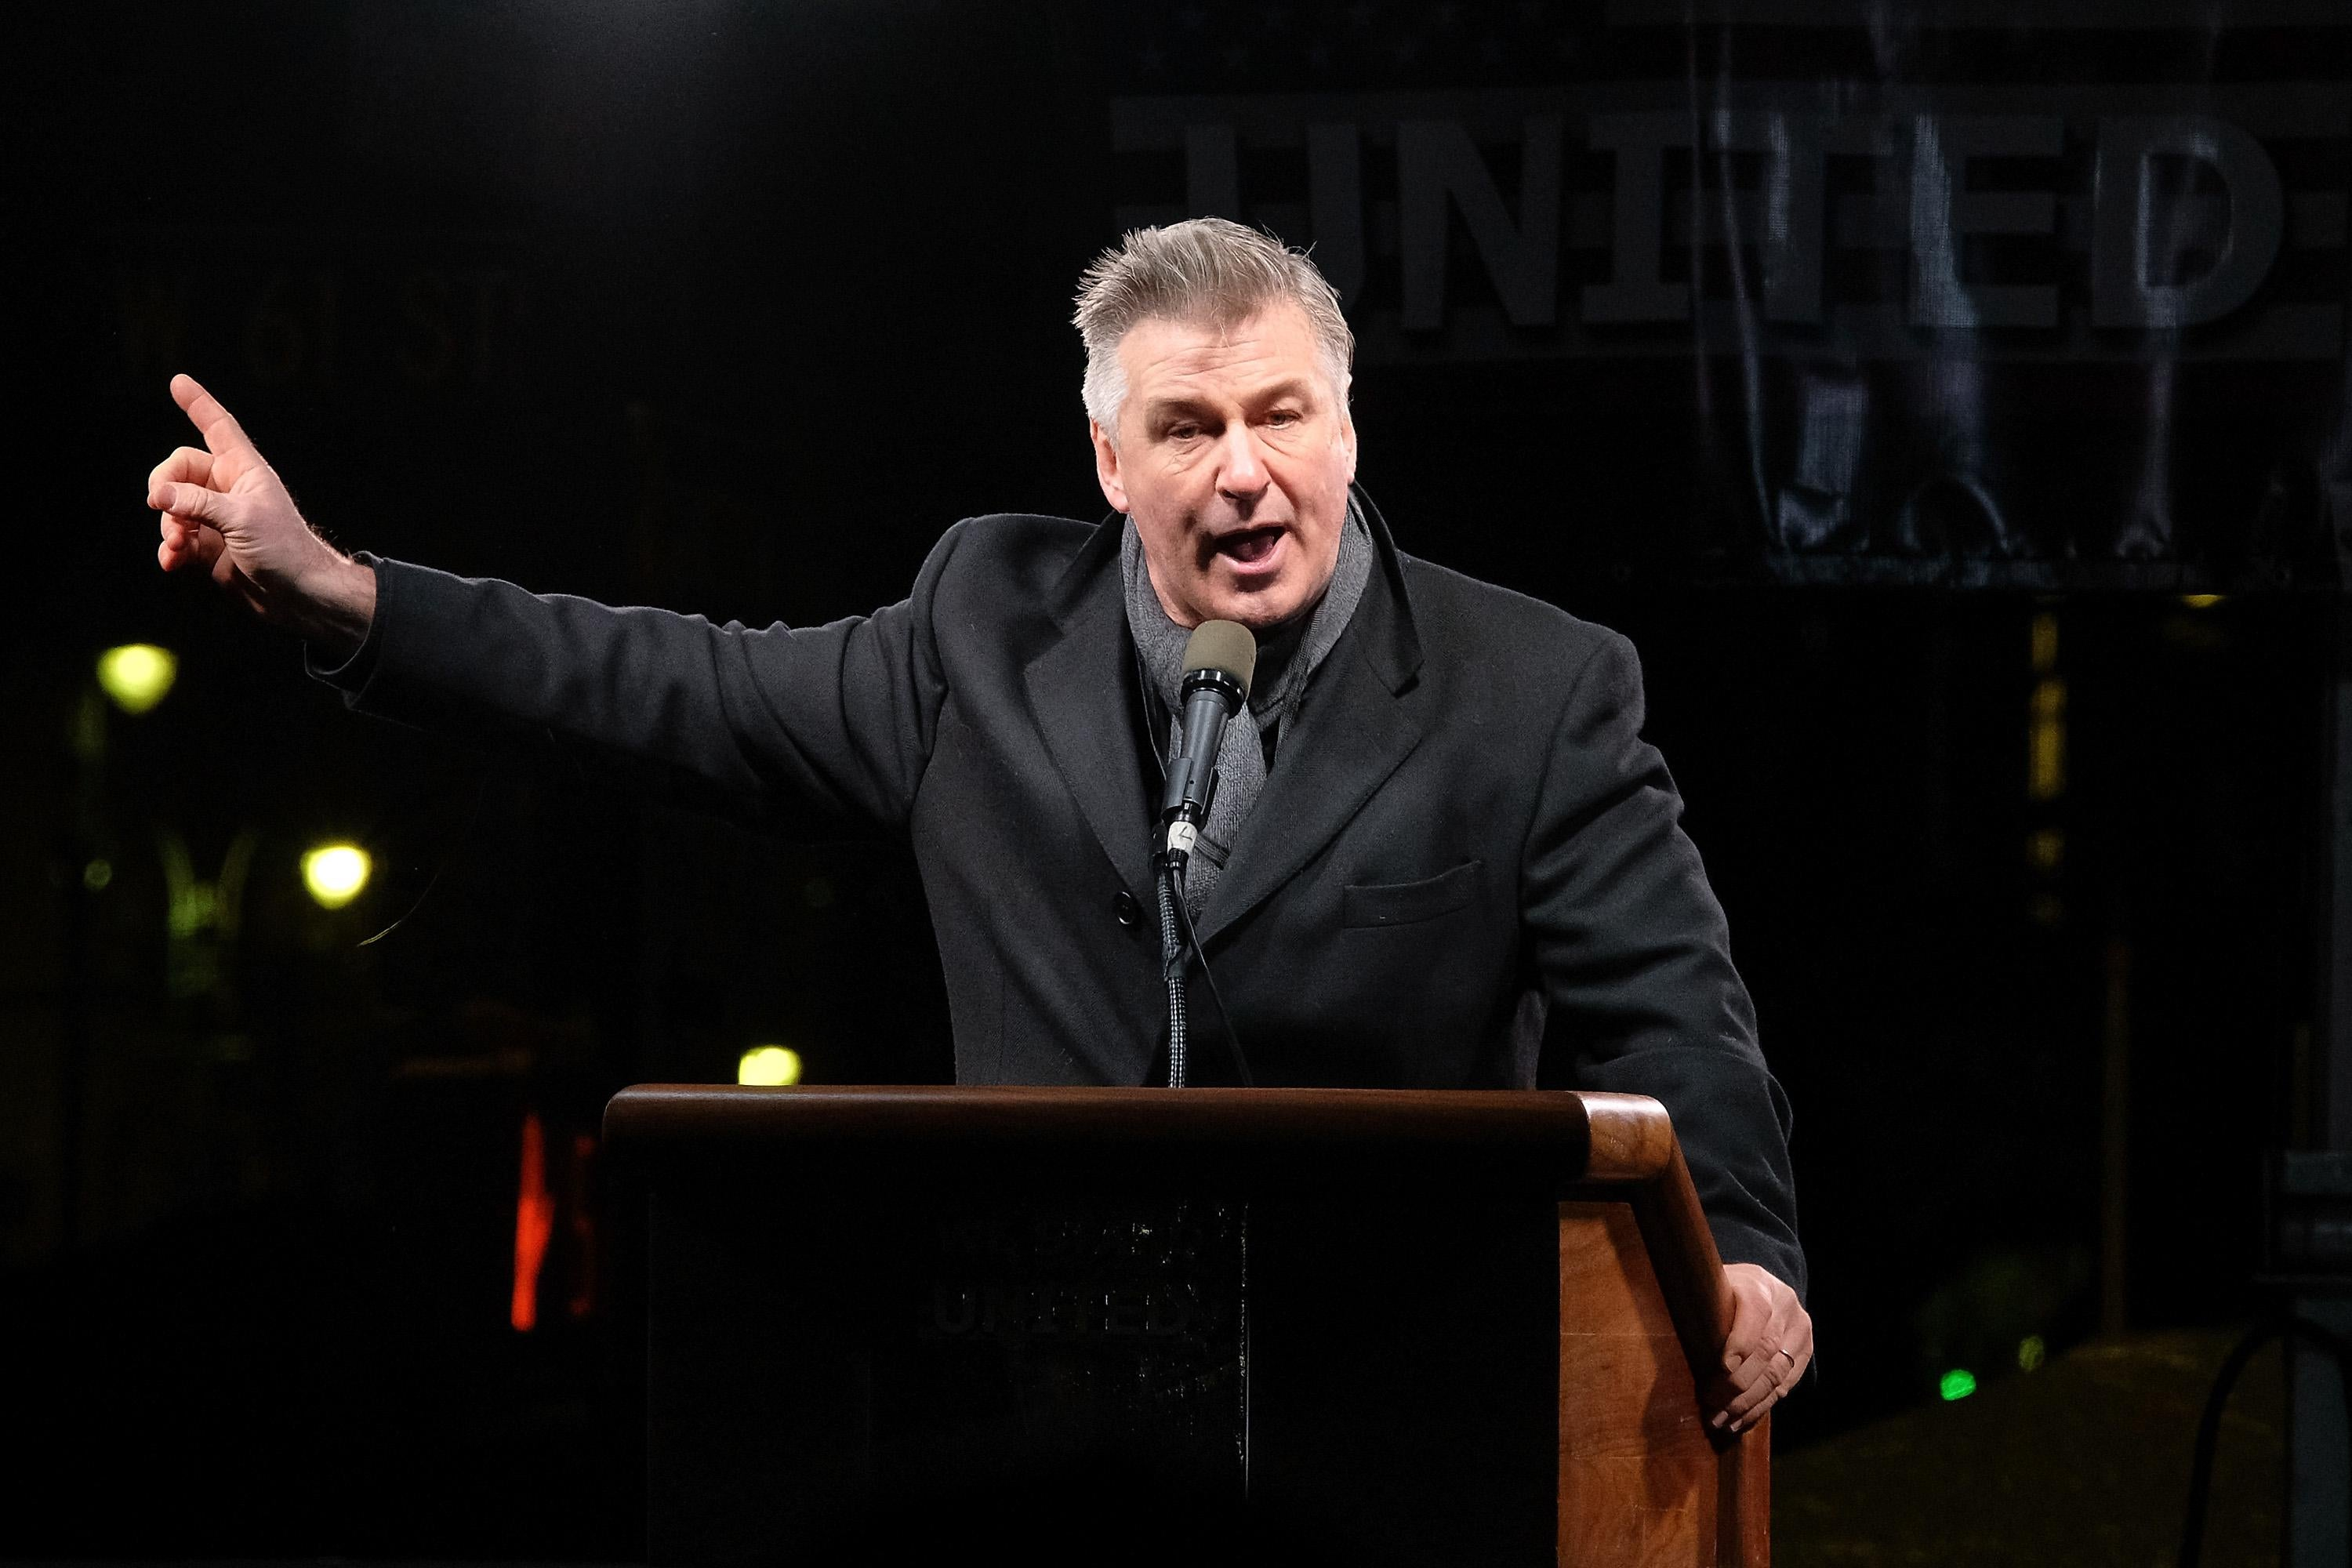 Alec Baldwin speaks onstage during the We Stand United NYC Rally outside Trump International Hotel & Tower on January 19, 2017 in New York City.